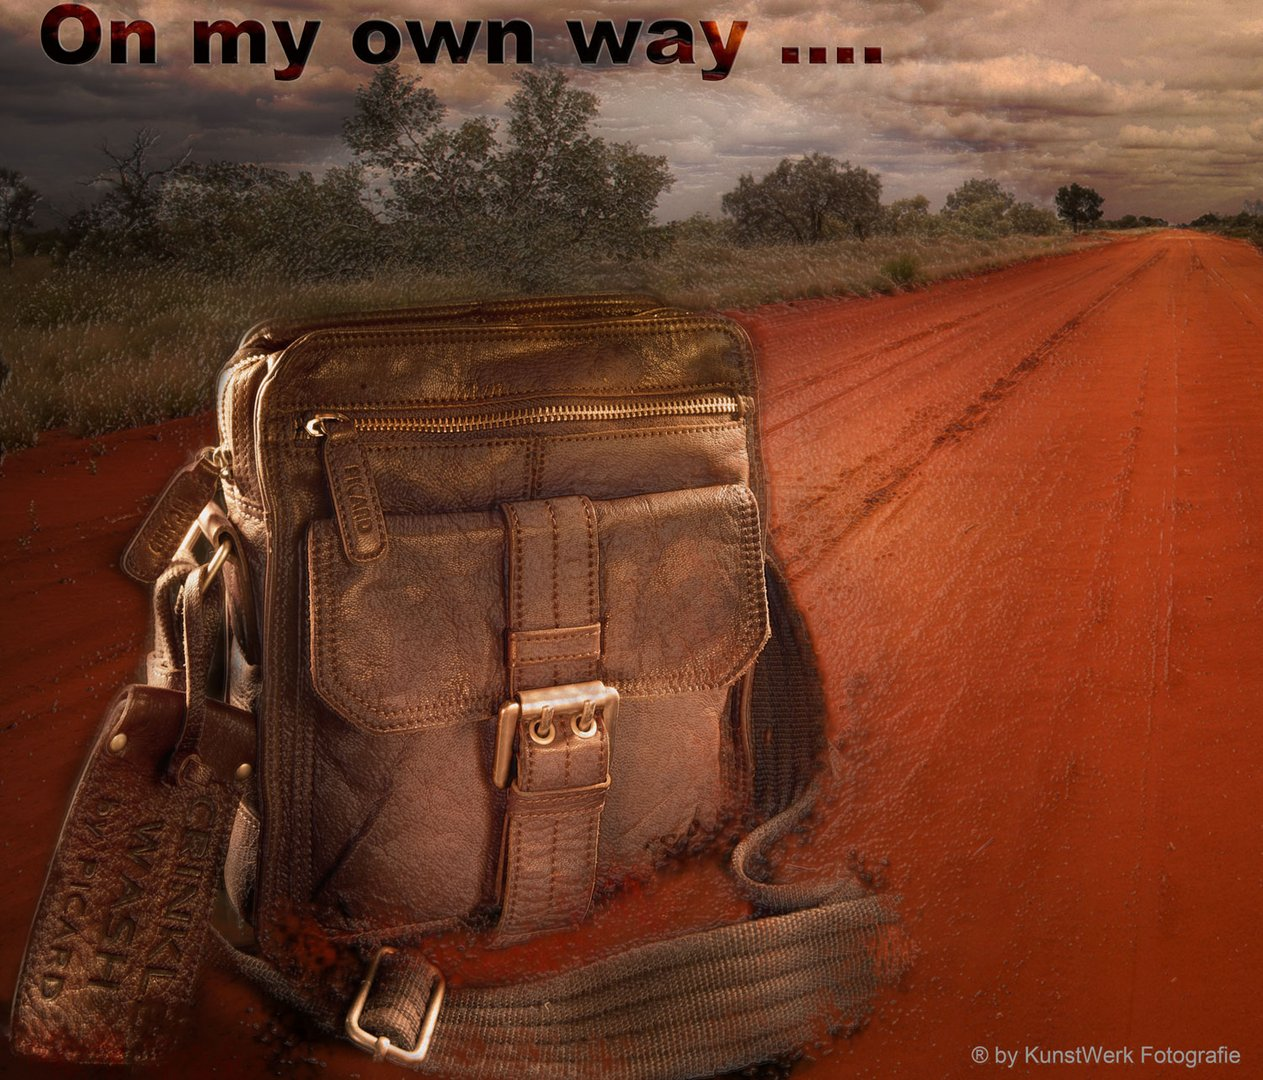 On my own way